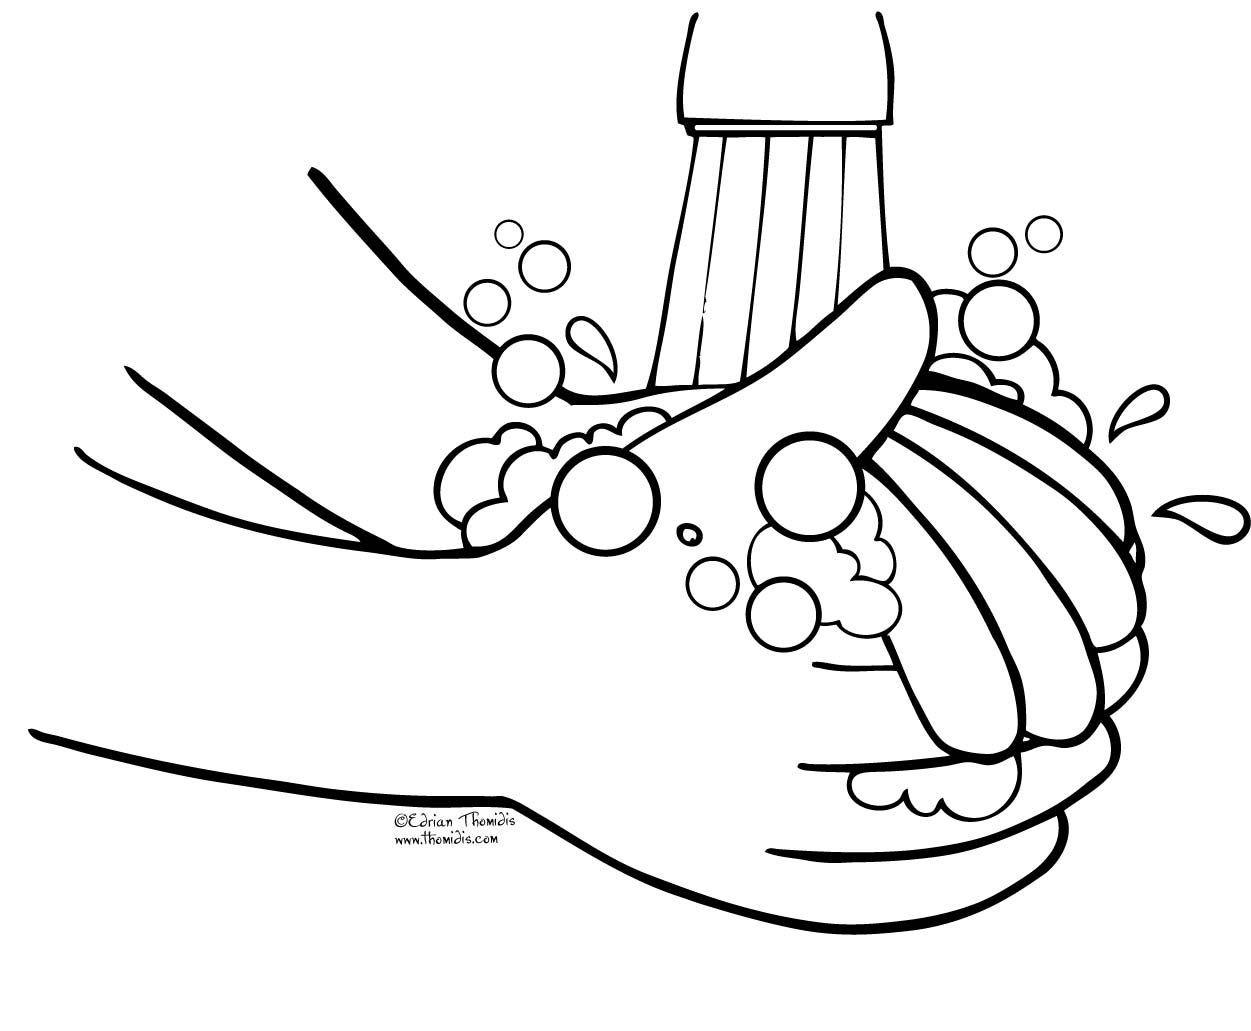 1251x1031 Praying Hands Coloring Page Pages Ripping Hand Thebarnyard